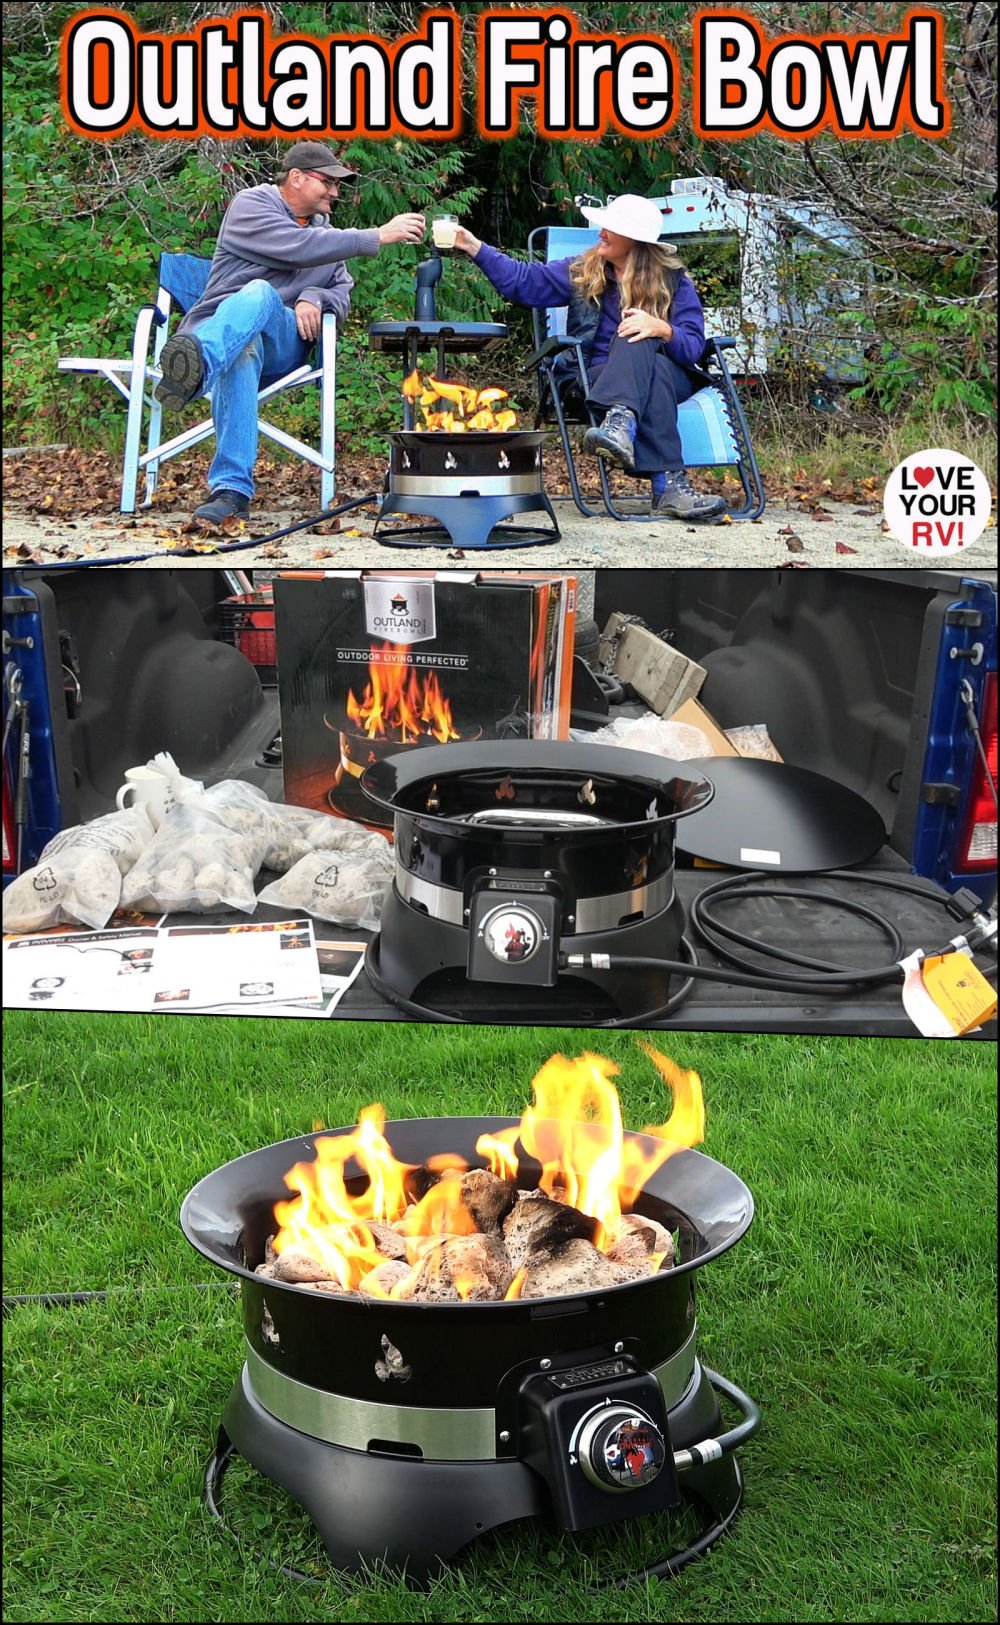 Demo and Review of the Outland Fire Bowl model 870